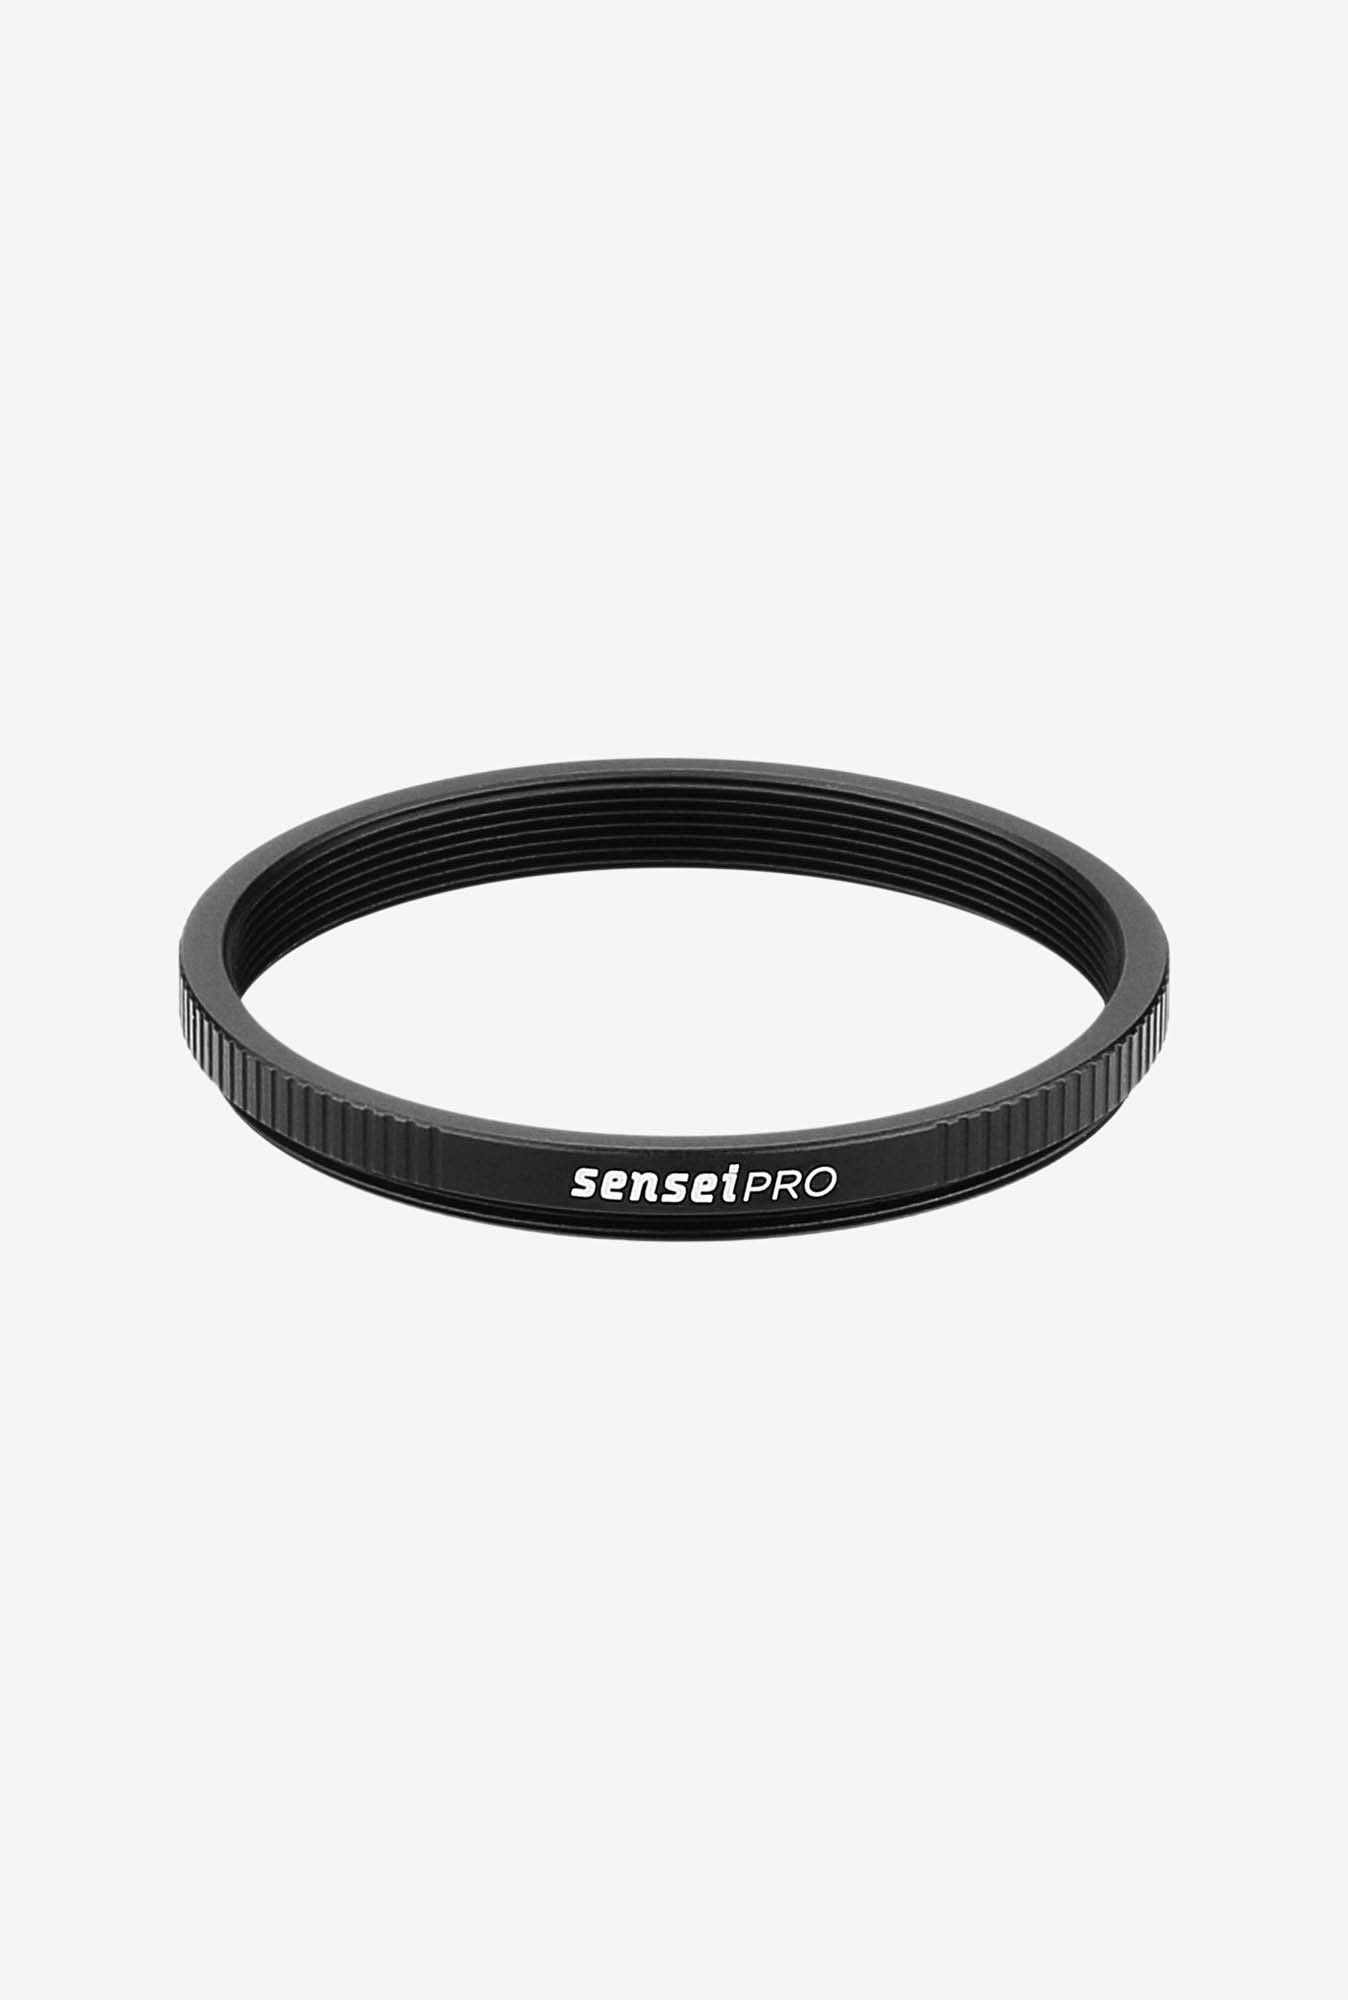 Sensei Pro SDRPA5249 52-49mm Step-Down Ring (Black)